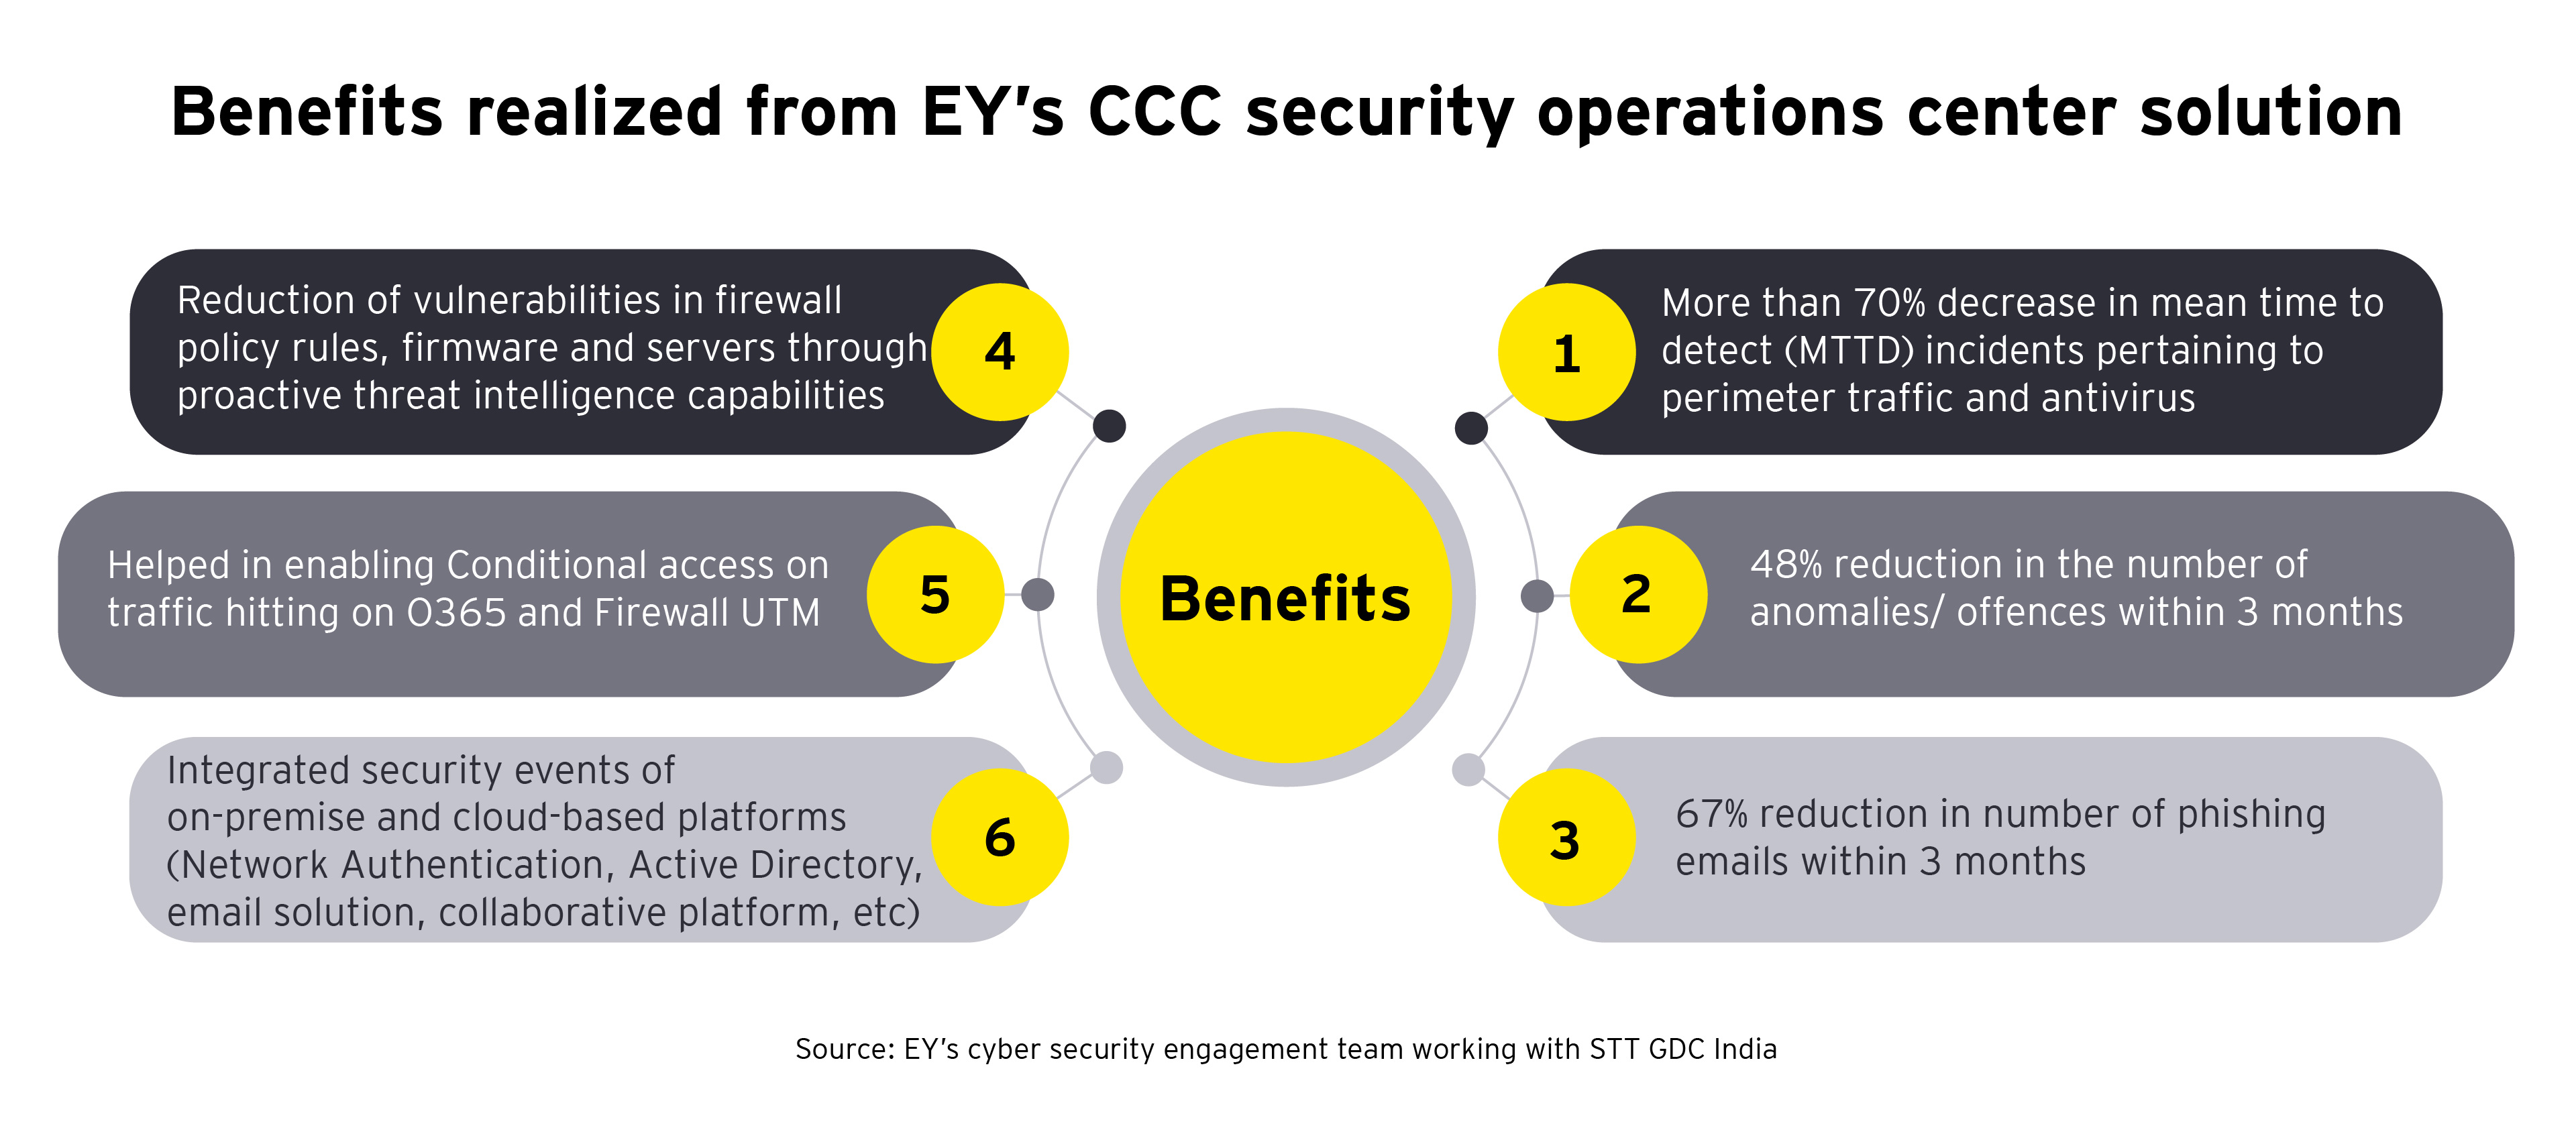 Benefits realized from EY's CCC security operations center solution